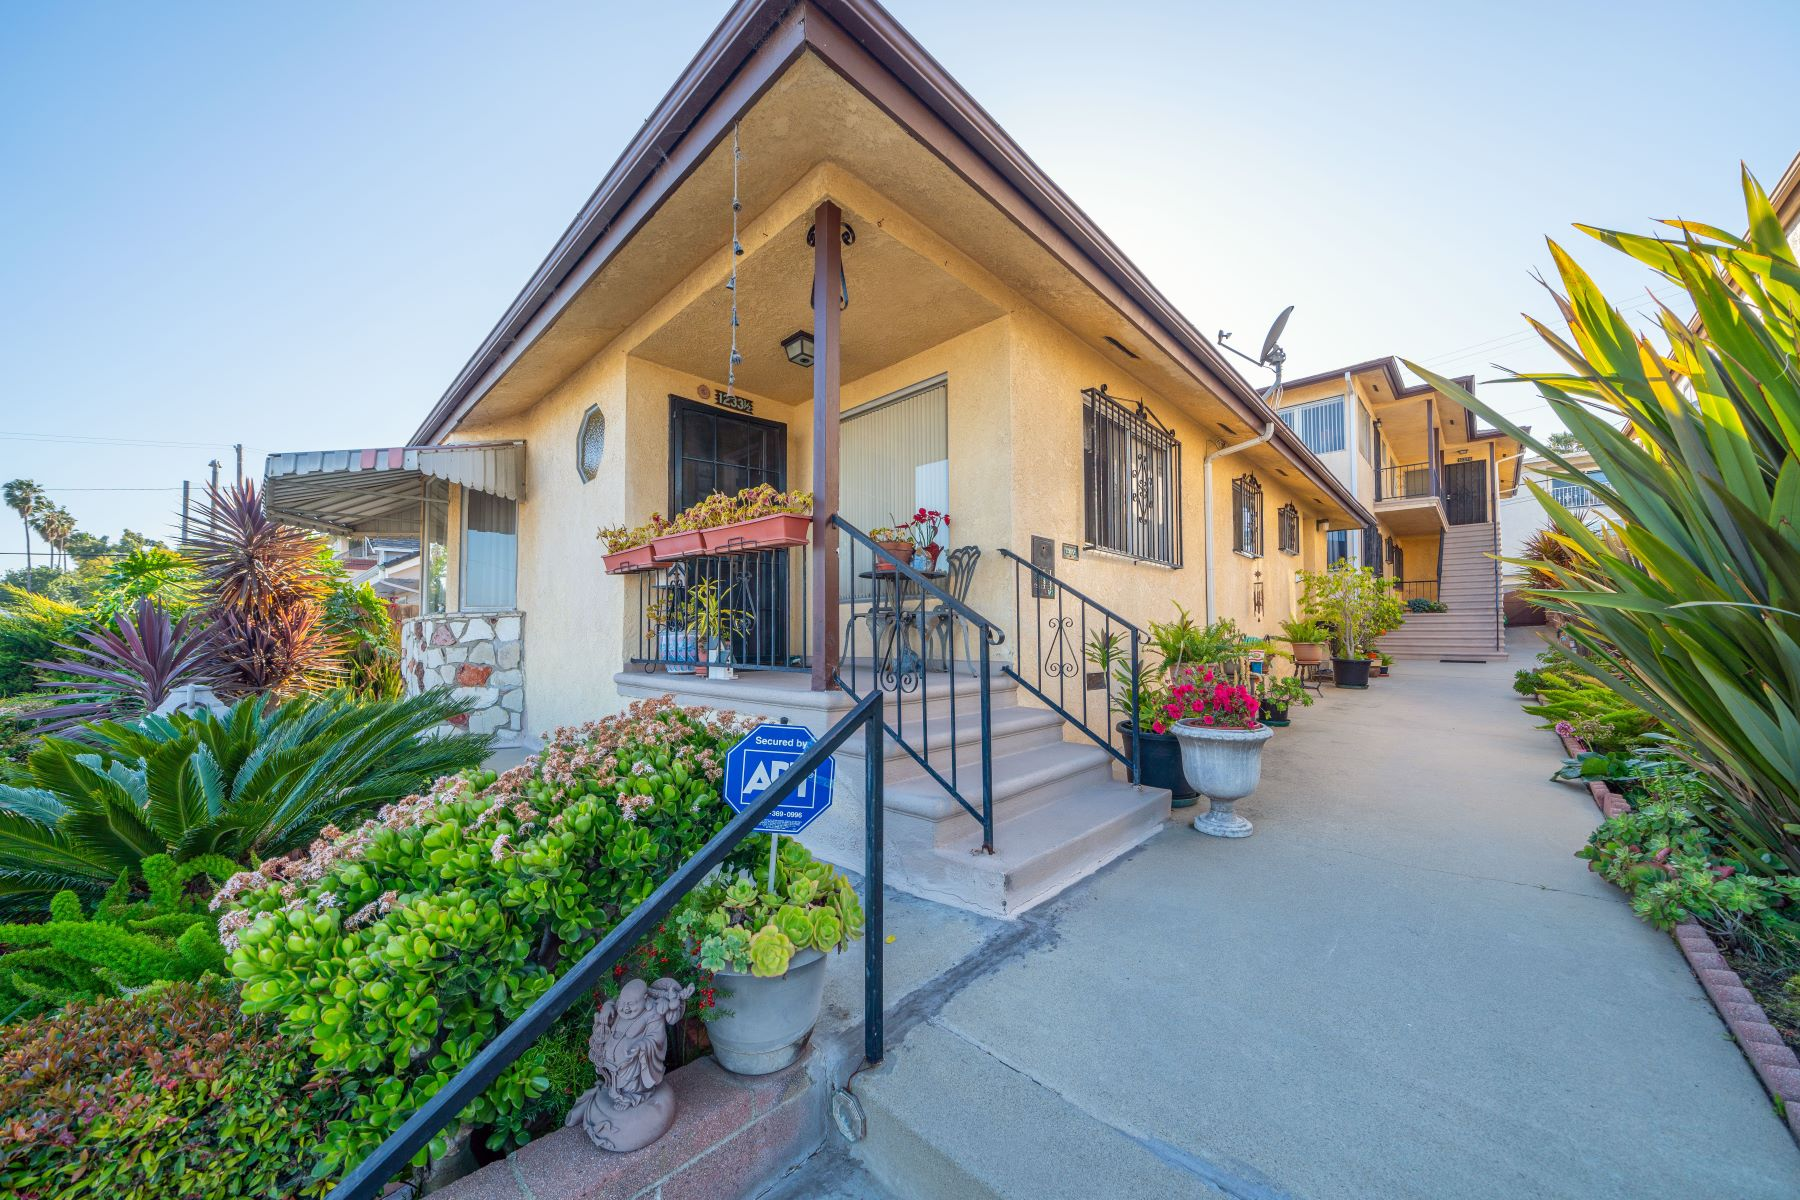 Multi-Family Homes for Sale at 1233 1/2 South Meyler Street, Los Angeles, CA 90731 1233 South Meyler Street Los Angeles, California 90731 United States